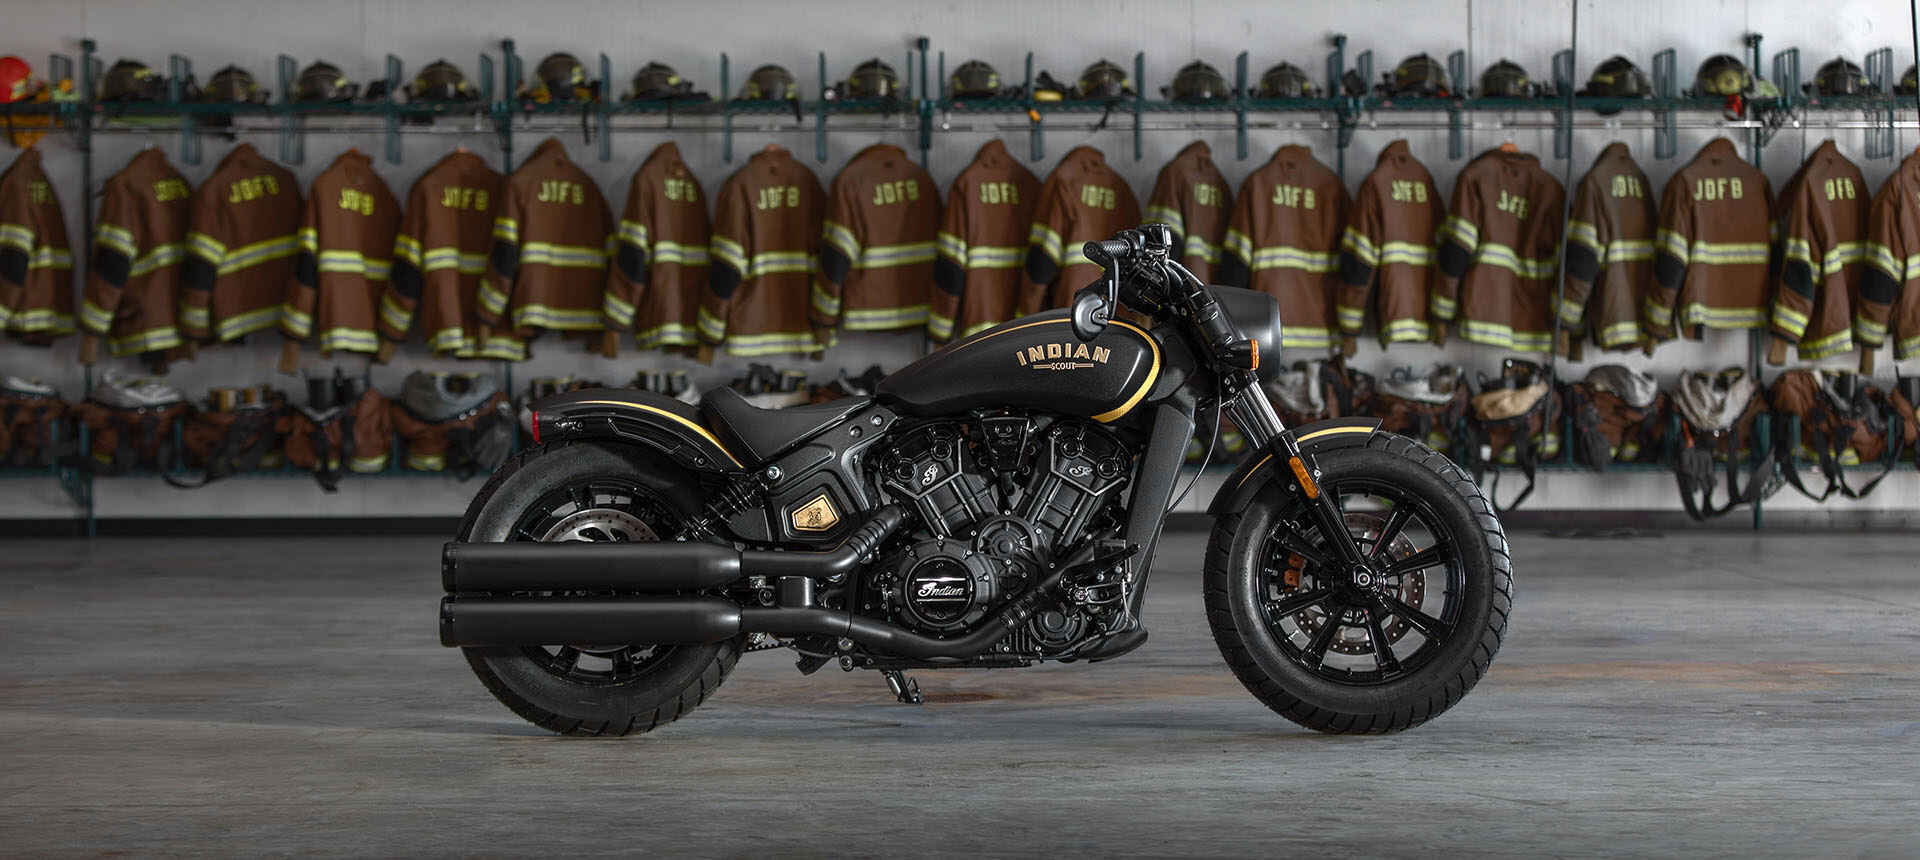 2018 Jack Daniel's Indian Scout Bobber